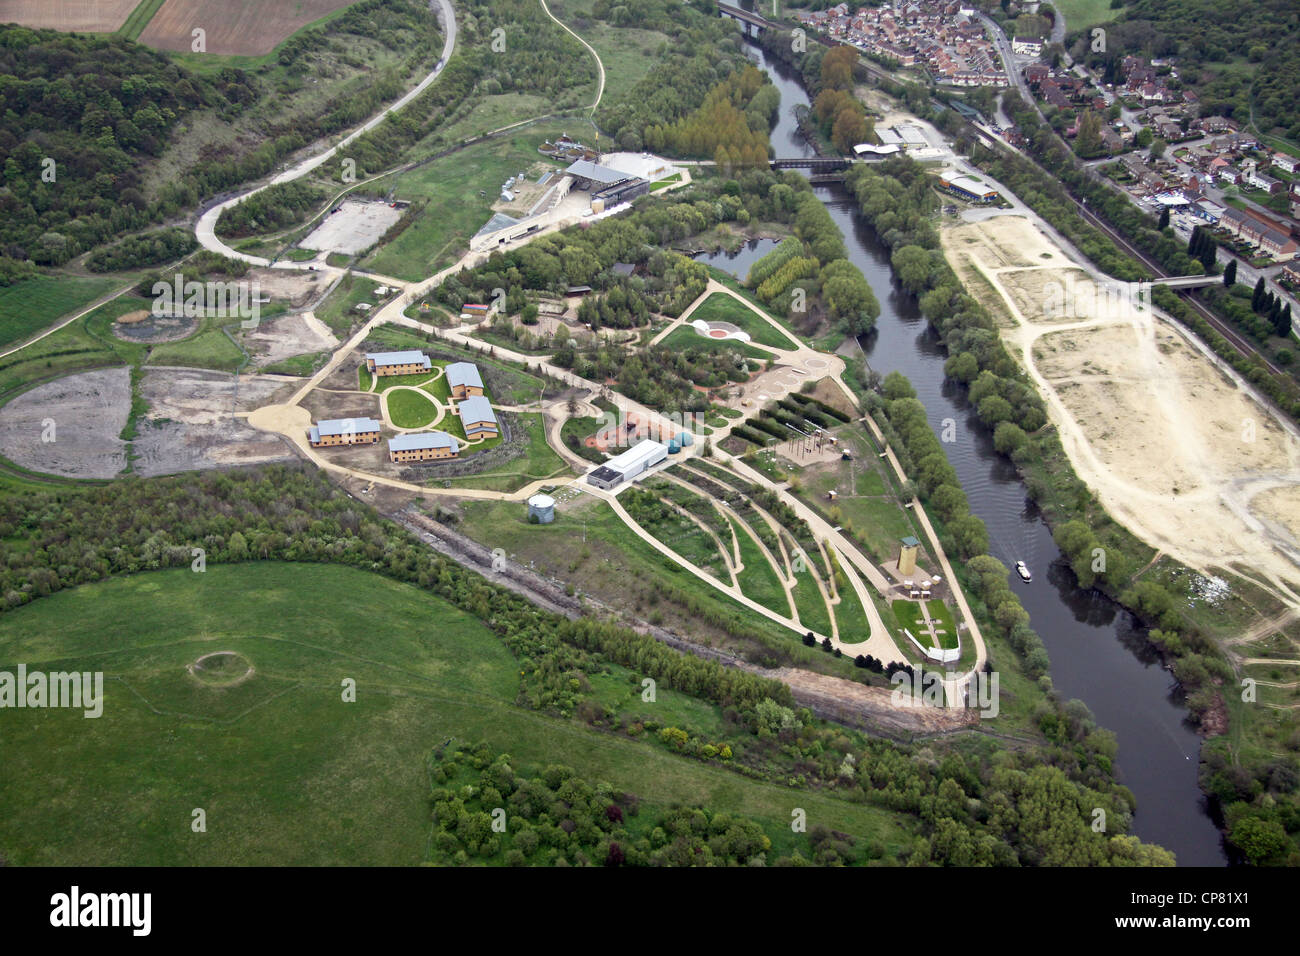 aerial view of the Earth Centre, now closed, at Conisborough South Yorkshire - Stock Image